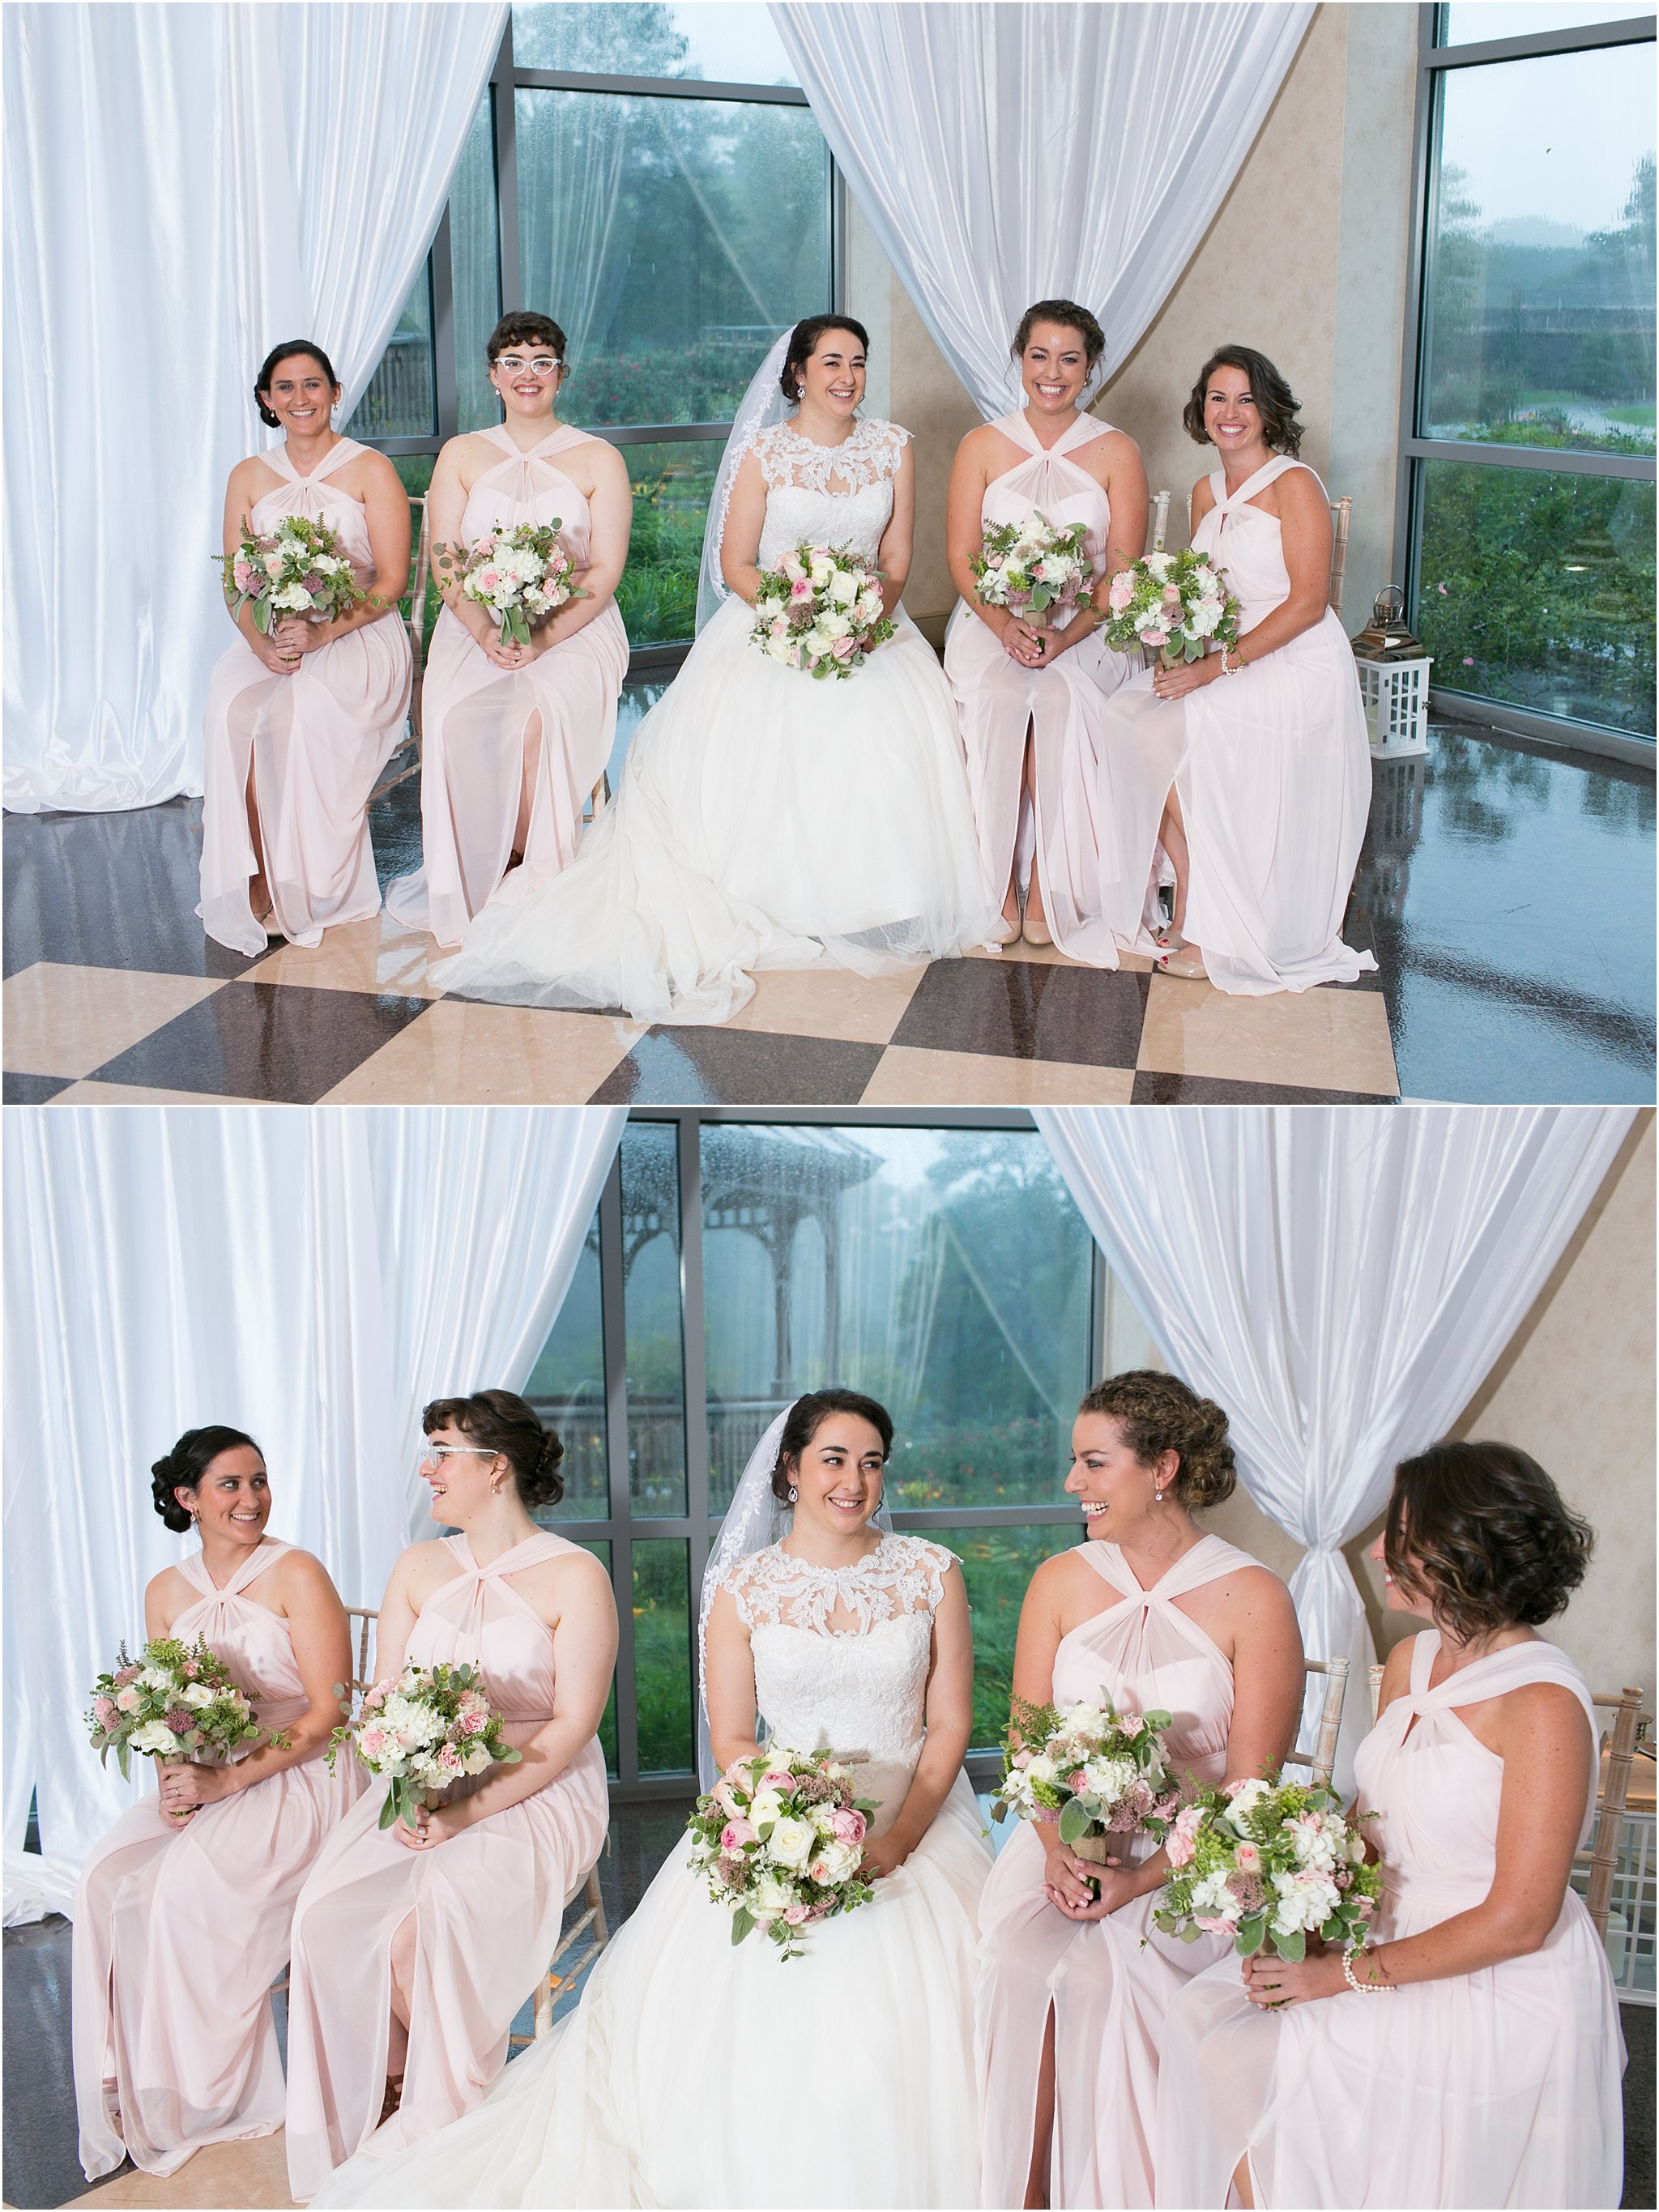 jessica_ryan_photography_virginia_wedding_photographer_wedding_hurricane_norfolk_botanical_gardens_hurricane_matthew_wedding_3579